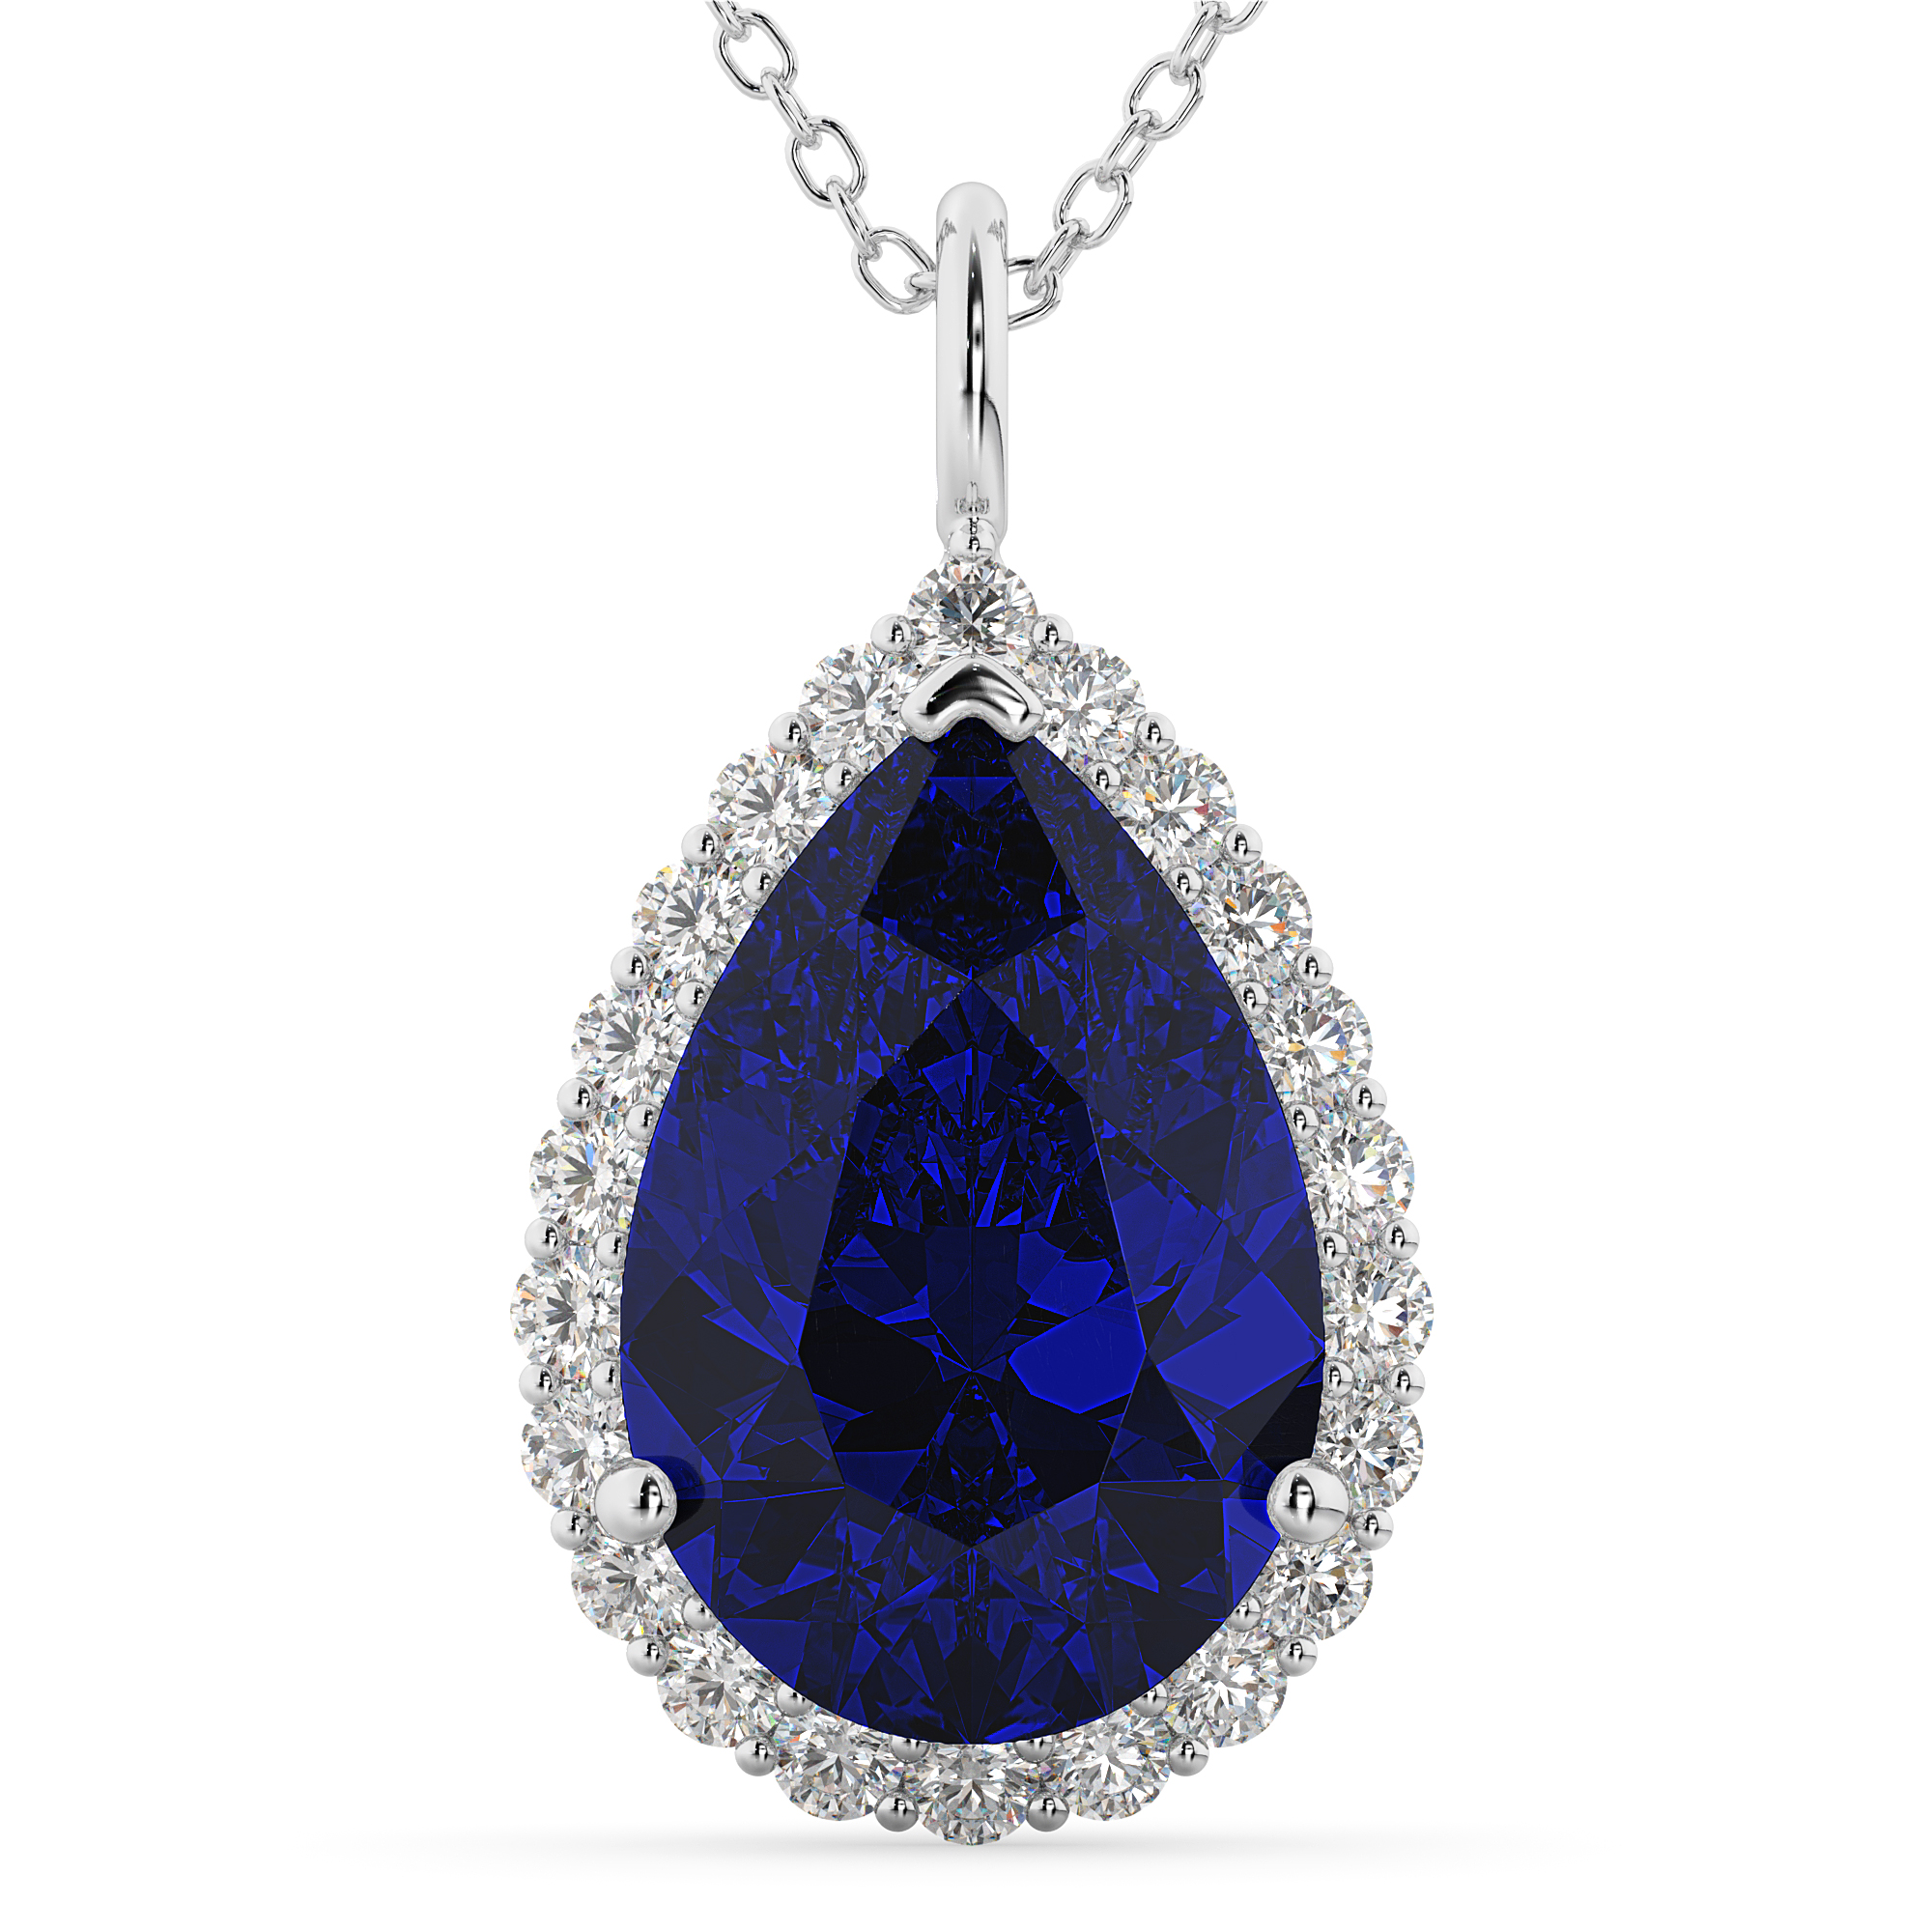 halo blue sapphire diamond pear shaped pendant necklace. Black Bedroom Furniture Sets. Home Design Ideas